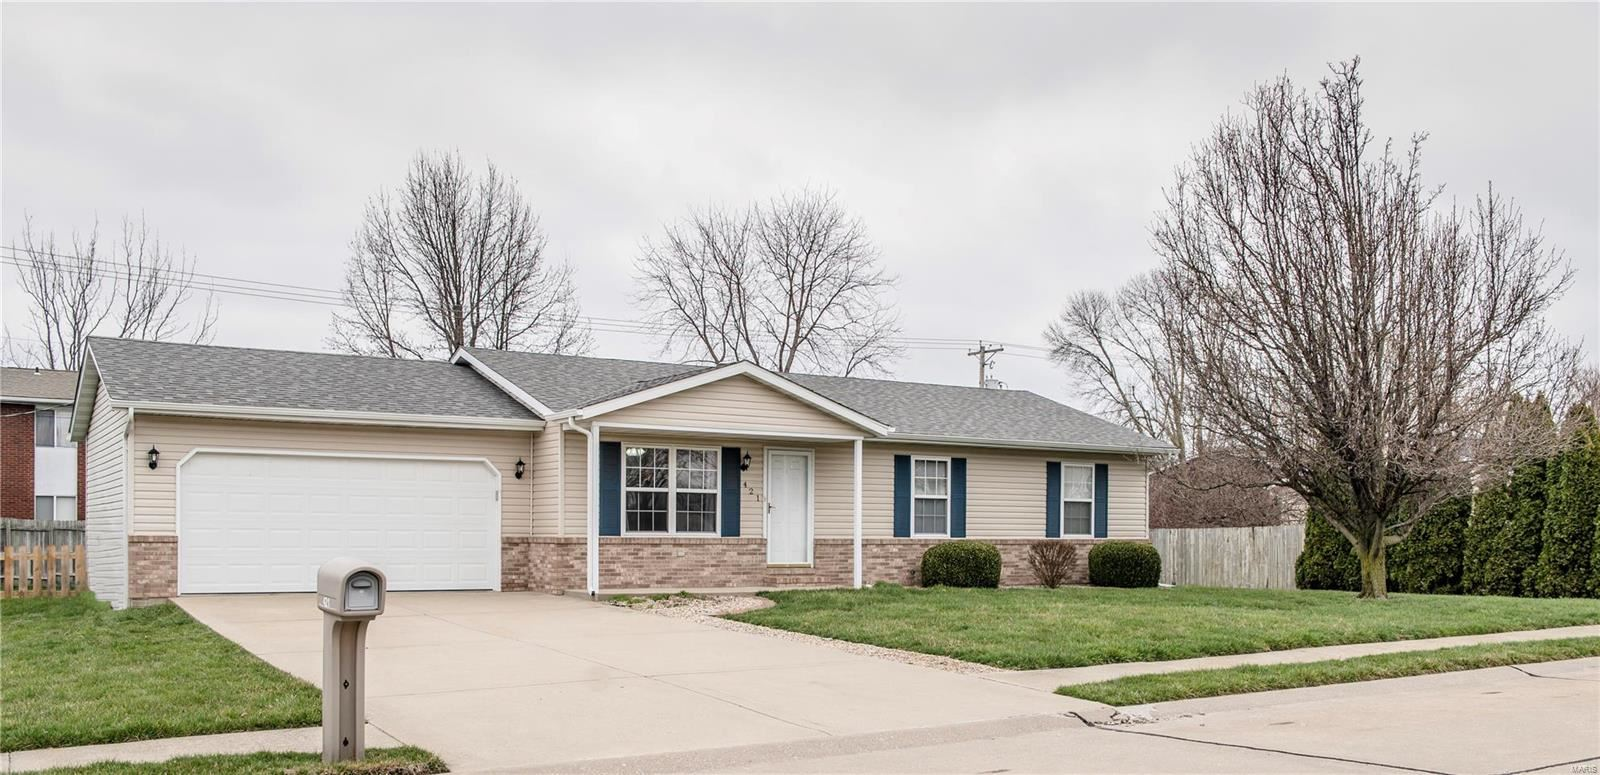 421 Orchard Court, Troy, IL 62294 - MLS#: 20017170